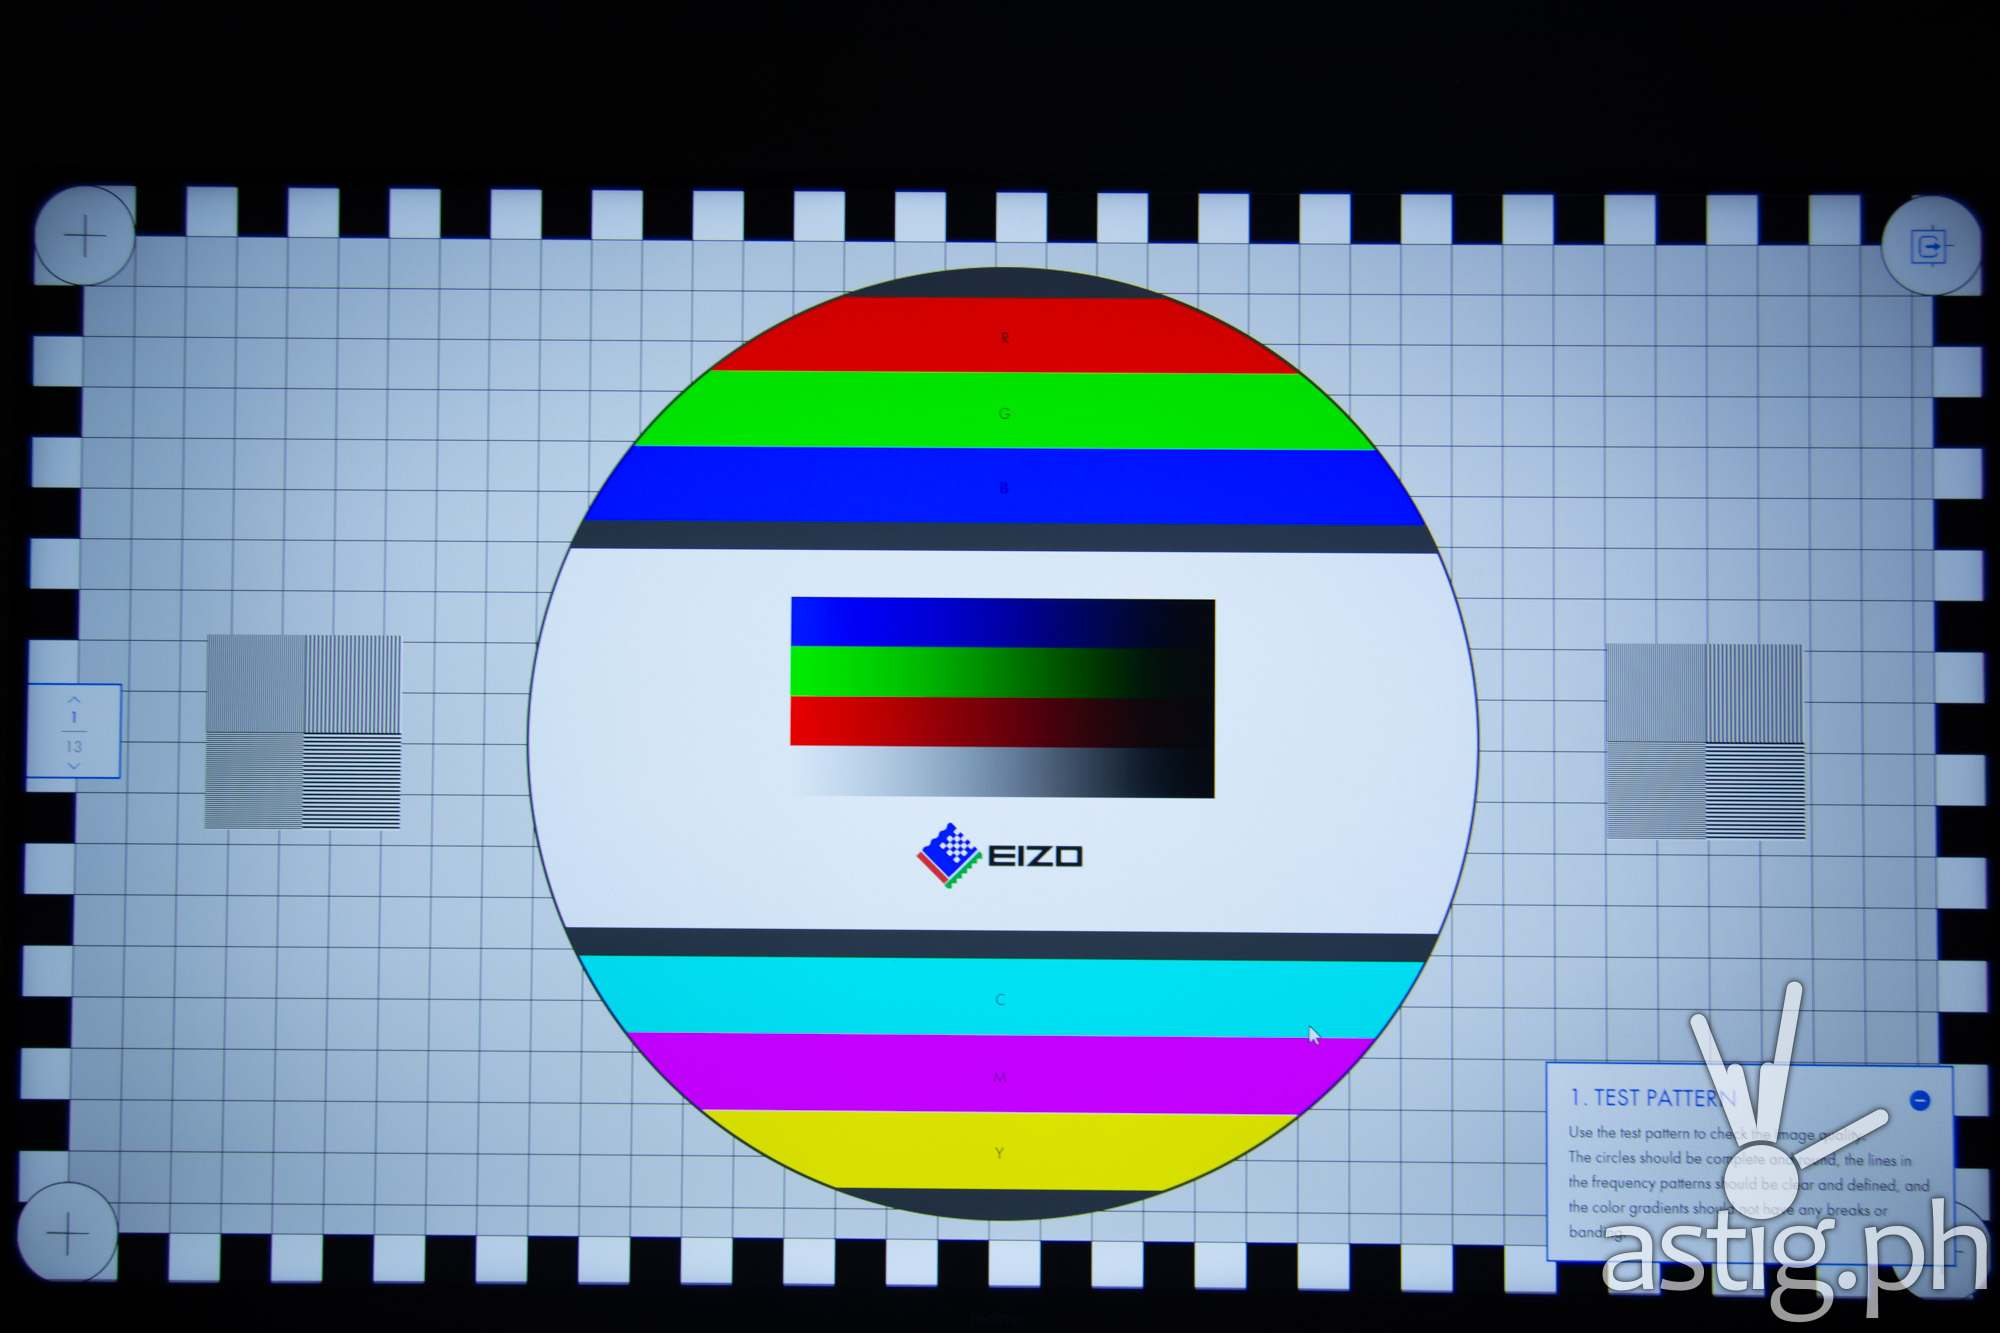 Test pattern - realme TV (Philippines)